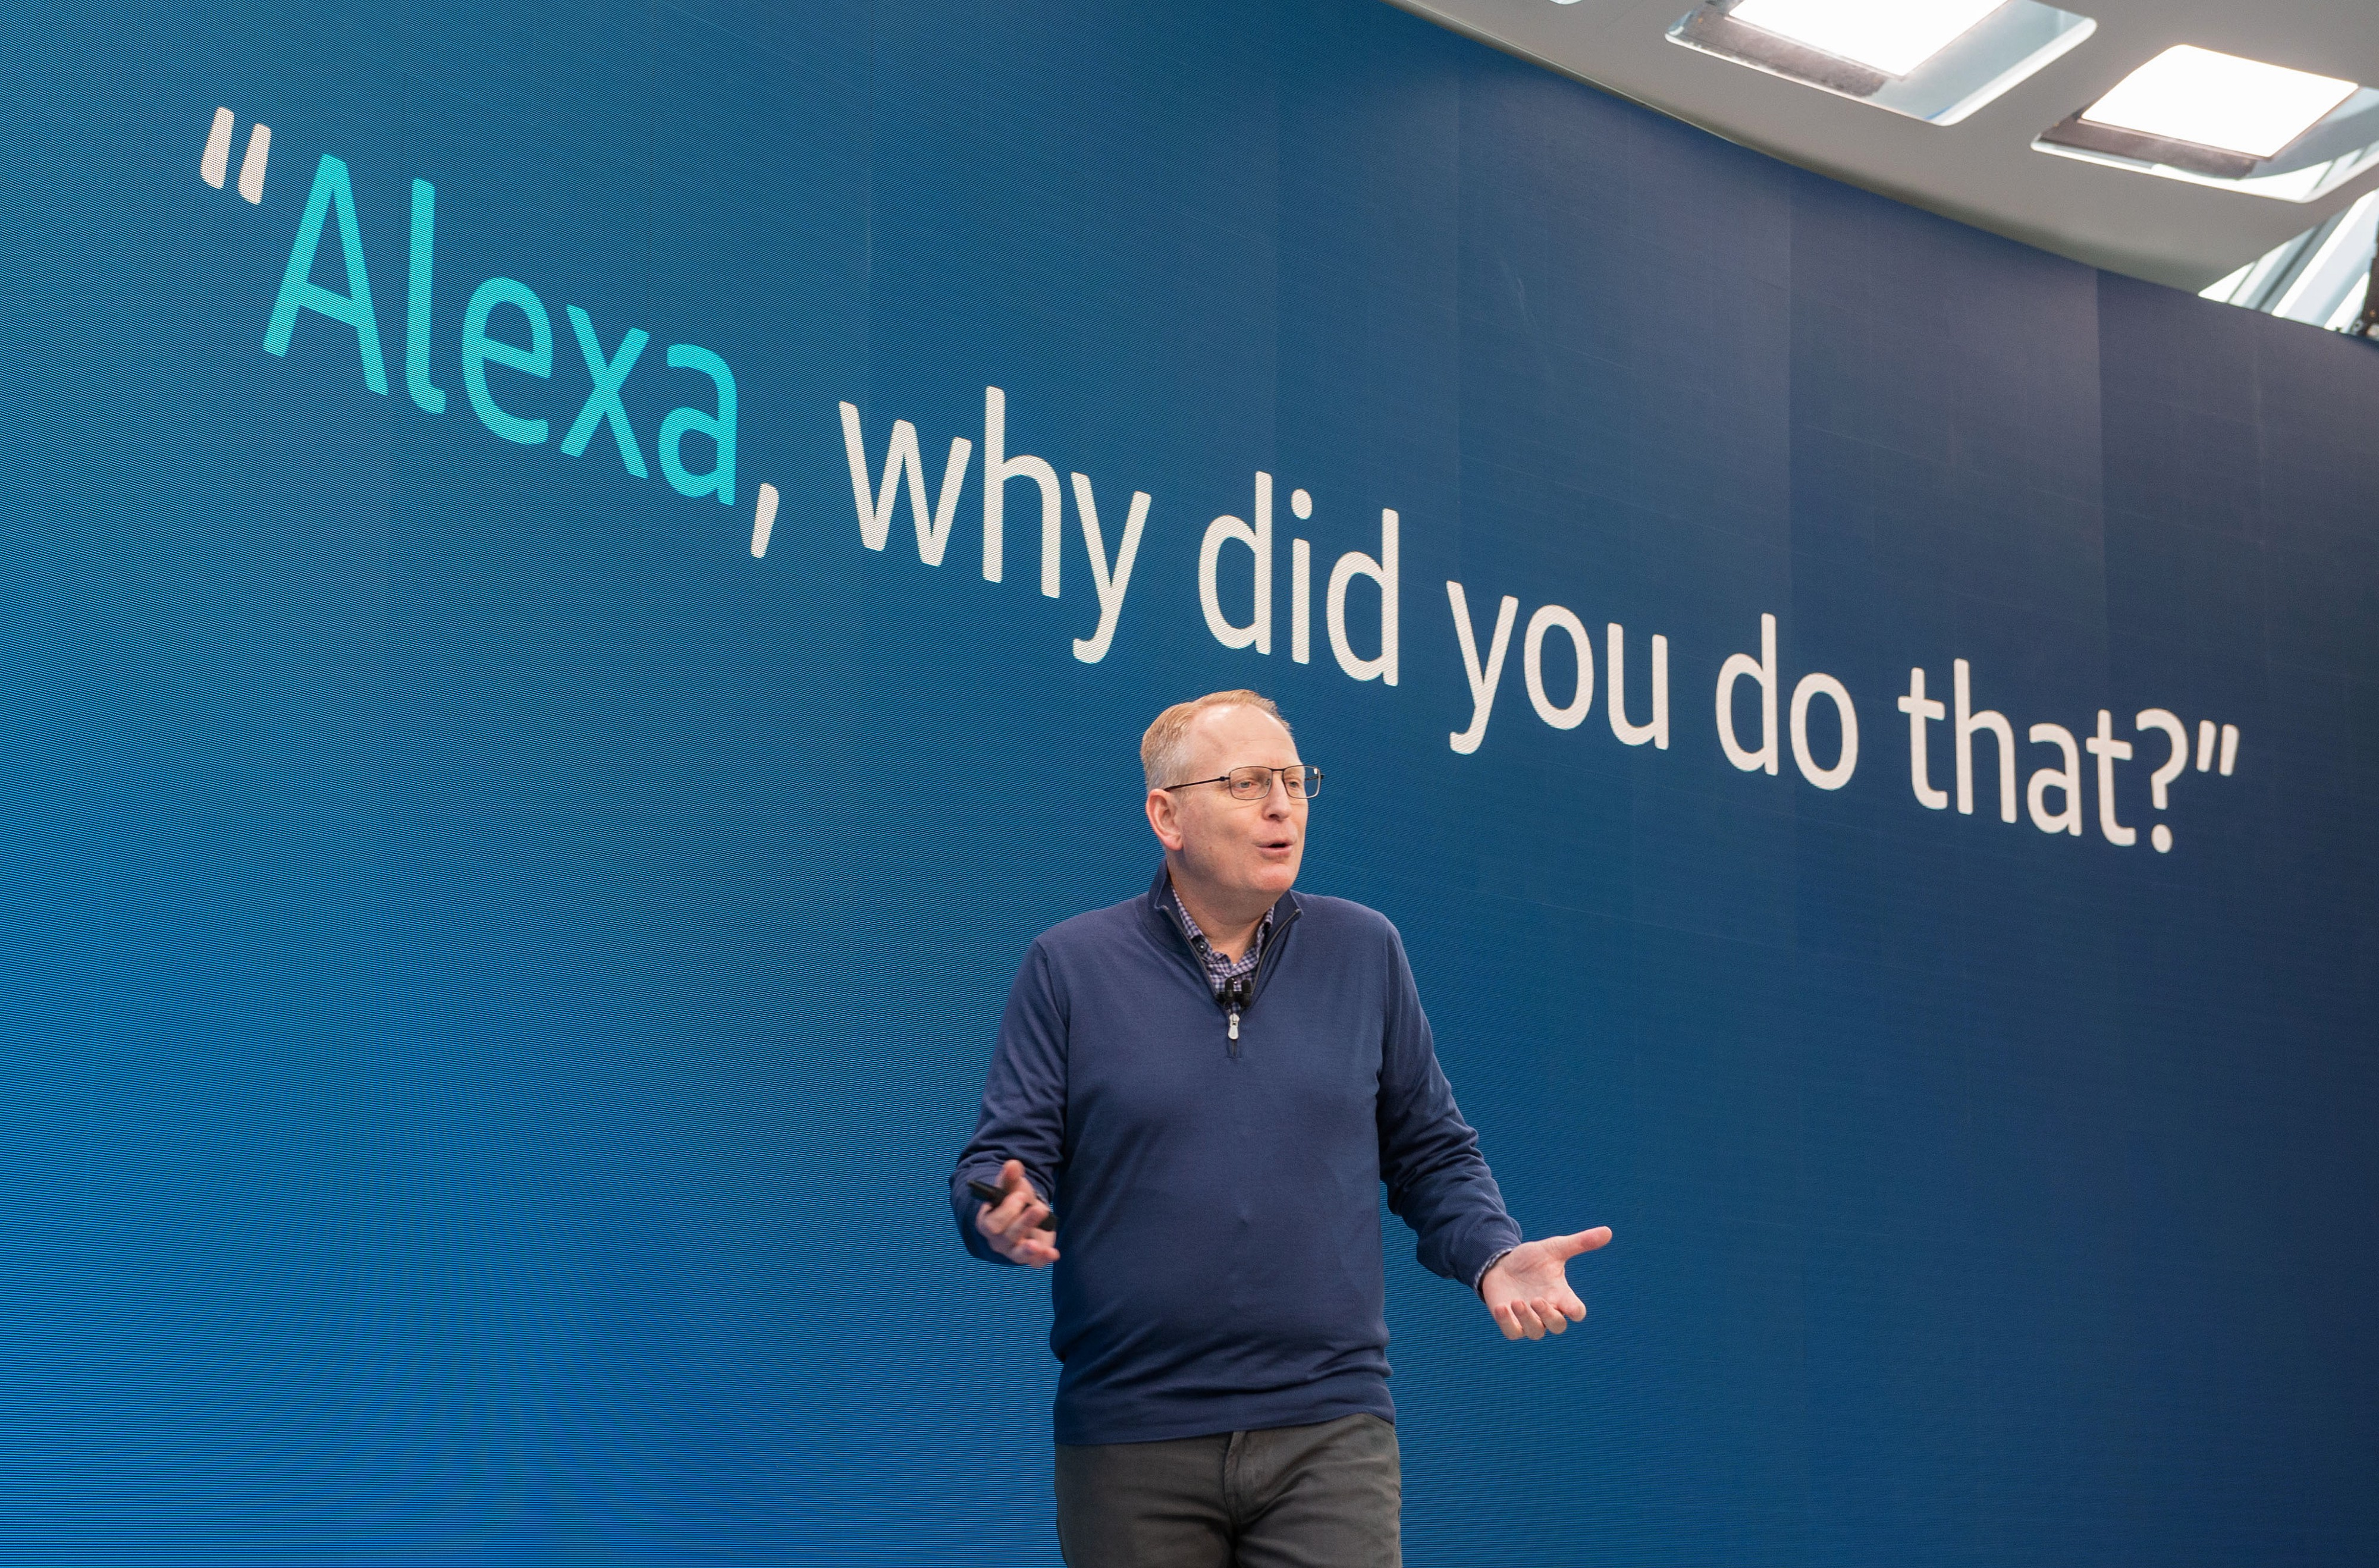 """Amazon senior VP Dave Limp demonstrates a new Alexa feature. The text """"Alexa, why did you do that?"""" is showcased behind him."""